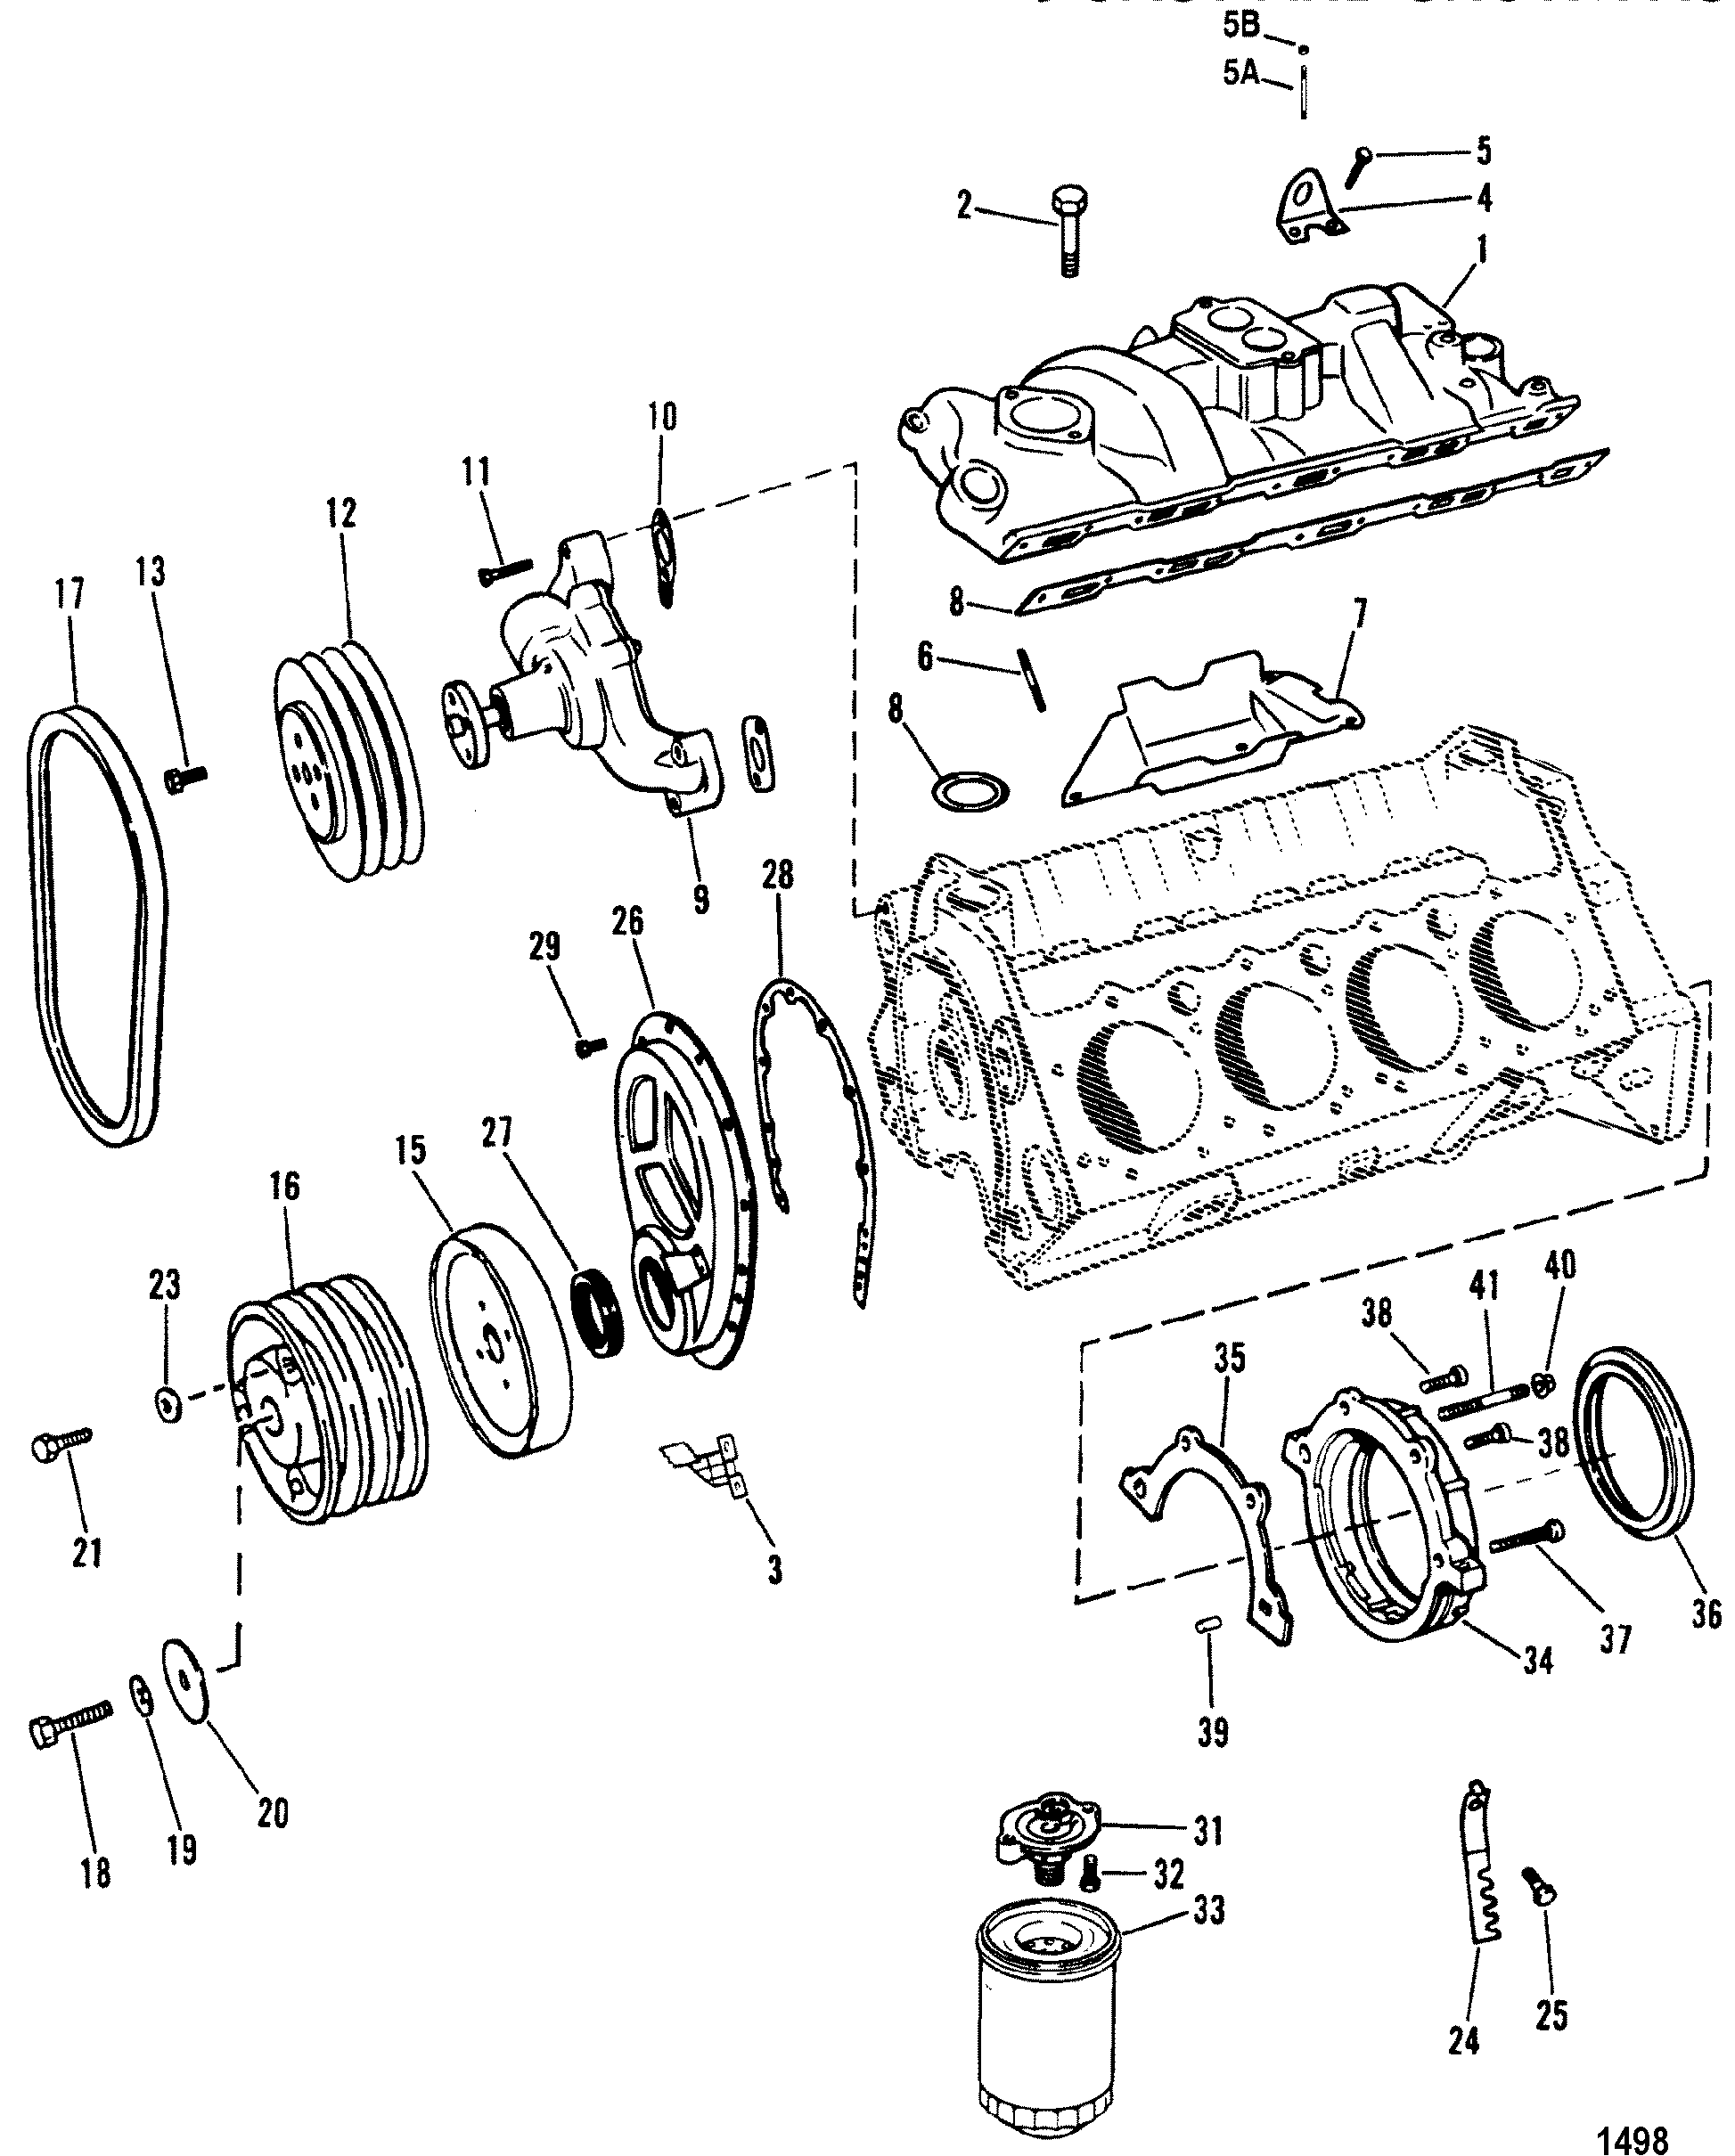 Gm 350 Carb To Engine Diagram Intake Manifold Electrical Wiring Manufold Hardin Marine And Front Cover Design Ii